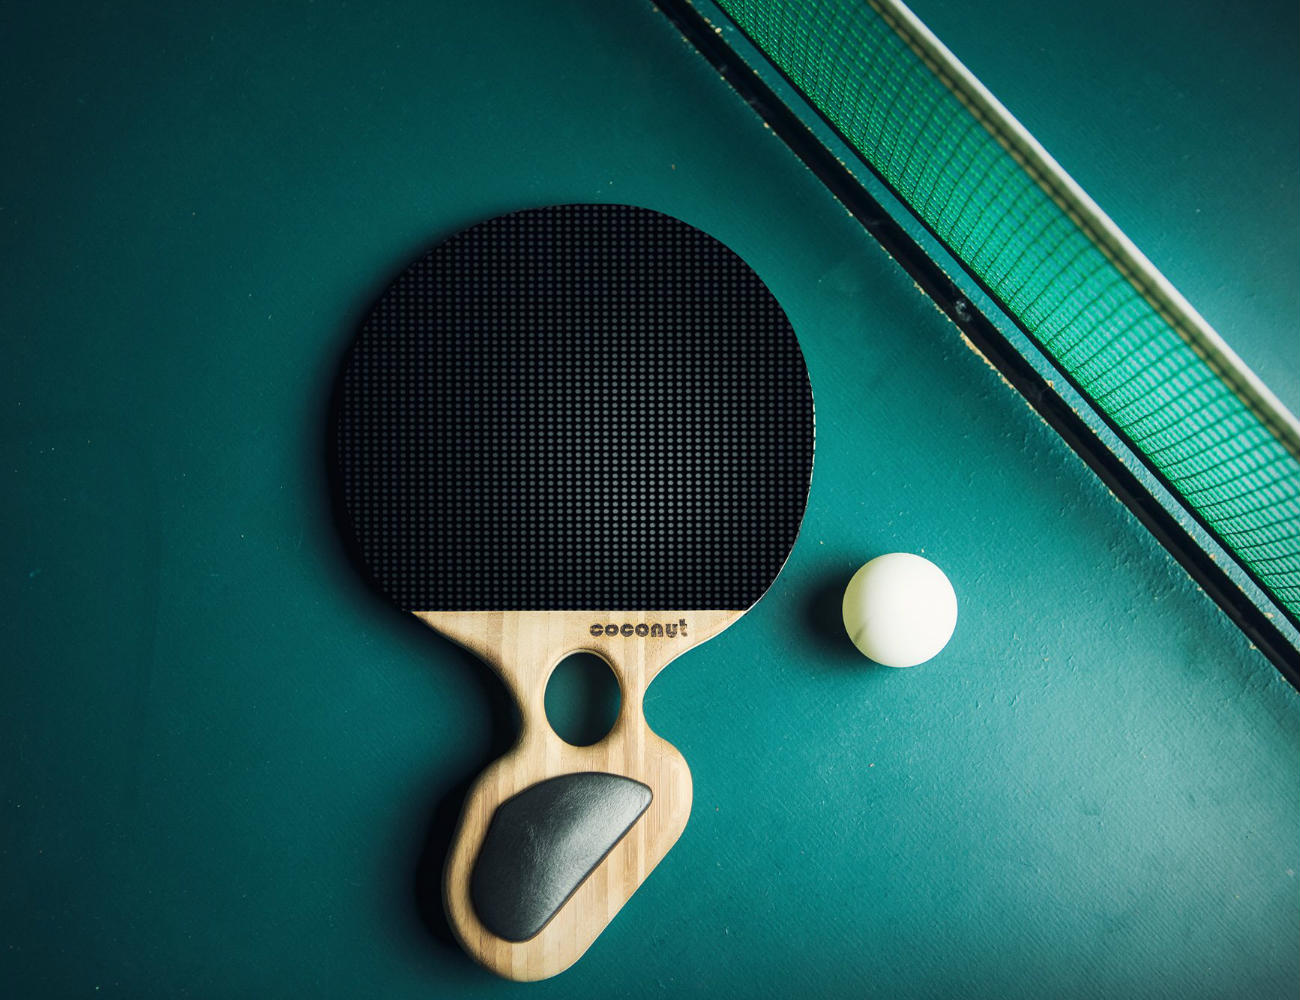 Coconut Paddle For Table Tennis 187 Gadget Flow